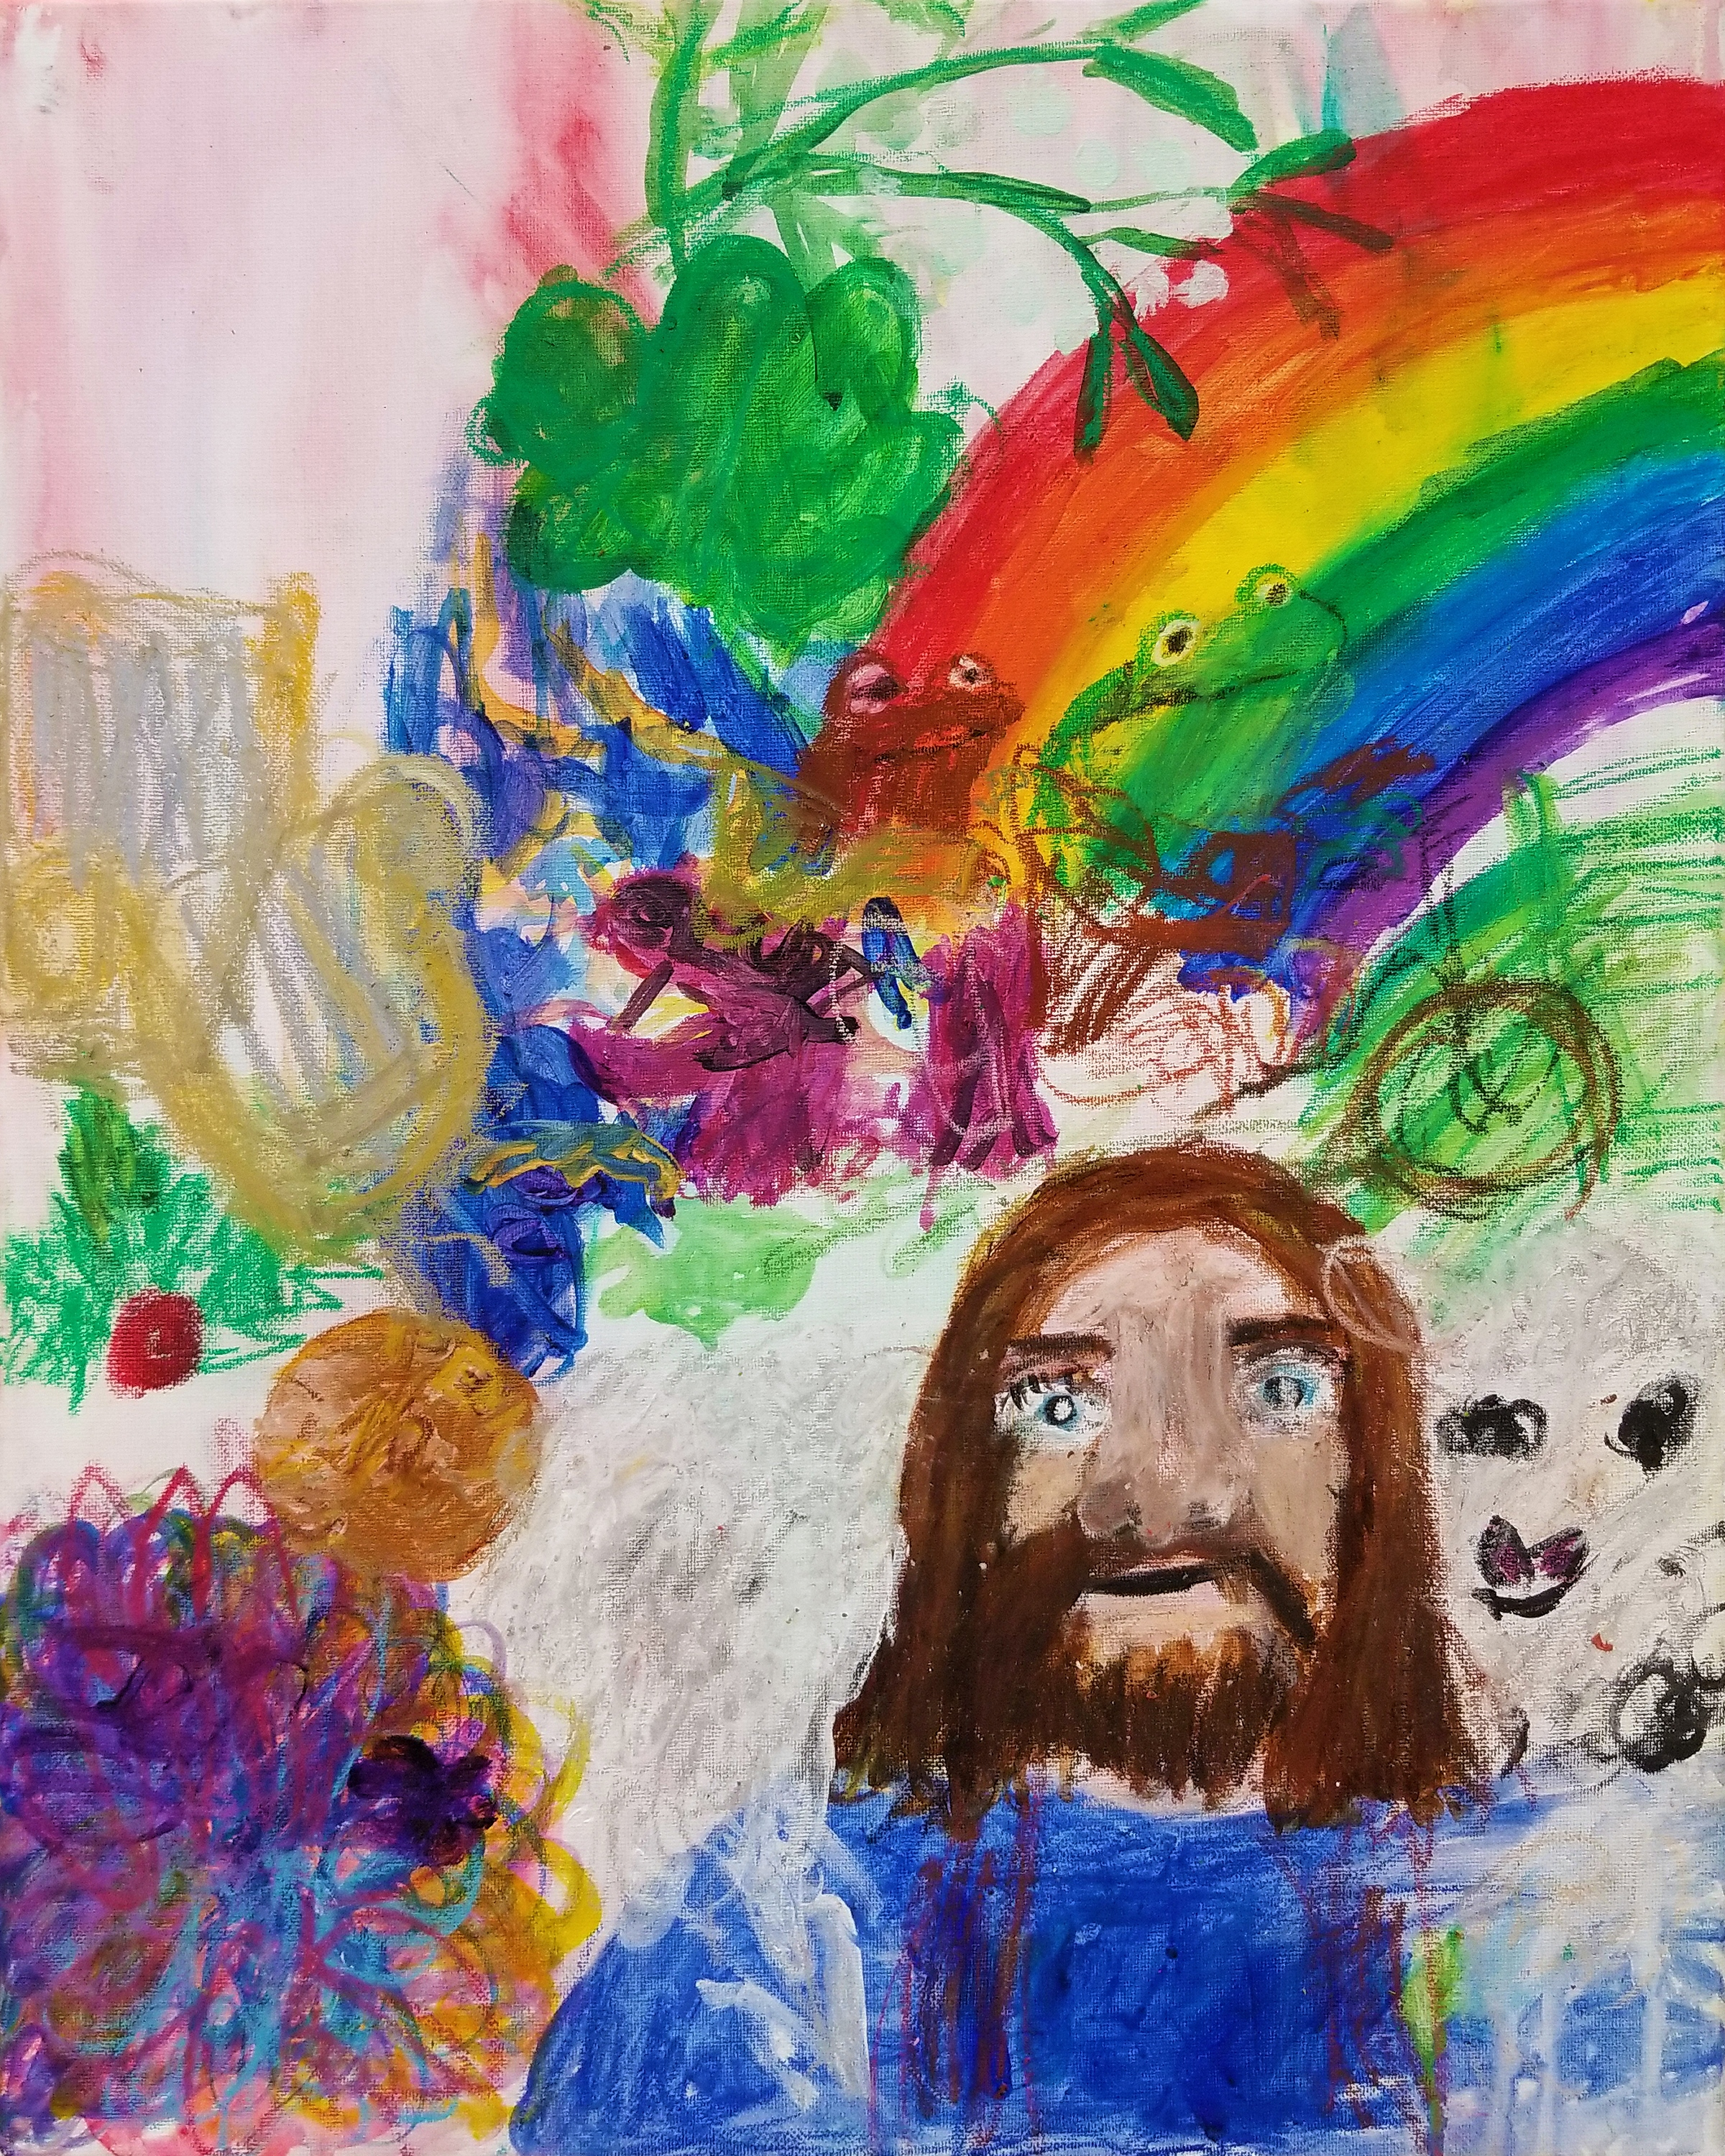 Lord Jesus and the Lamb - acrylic and oil pastel on canvas - 2018.jpg